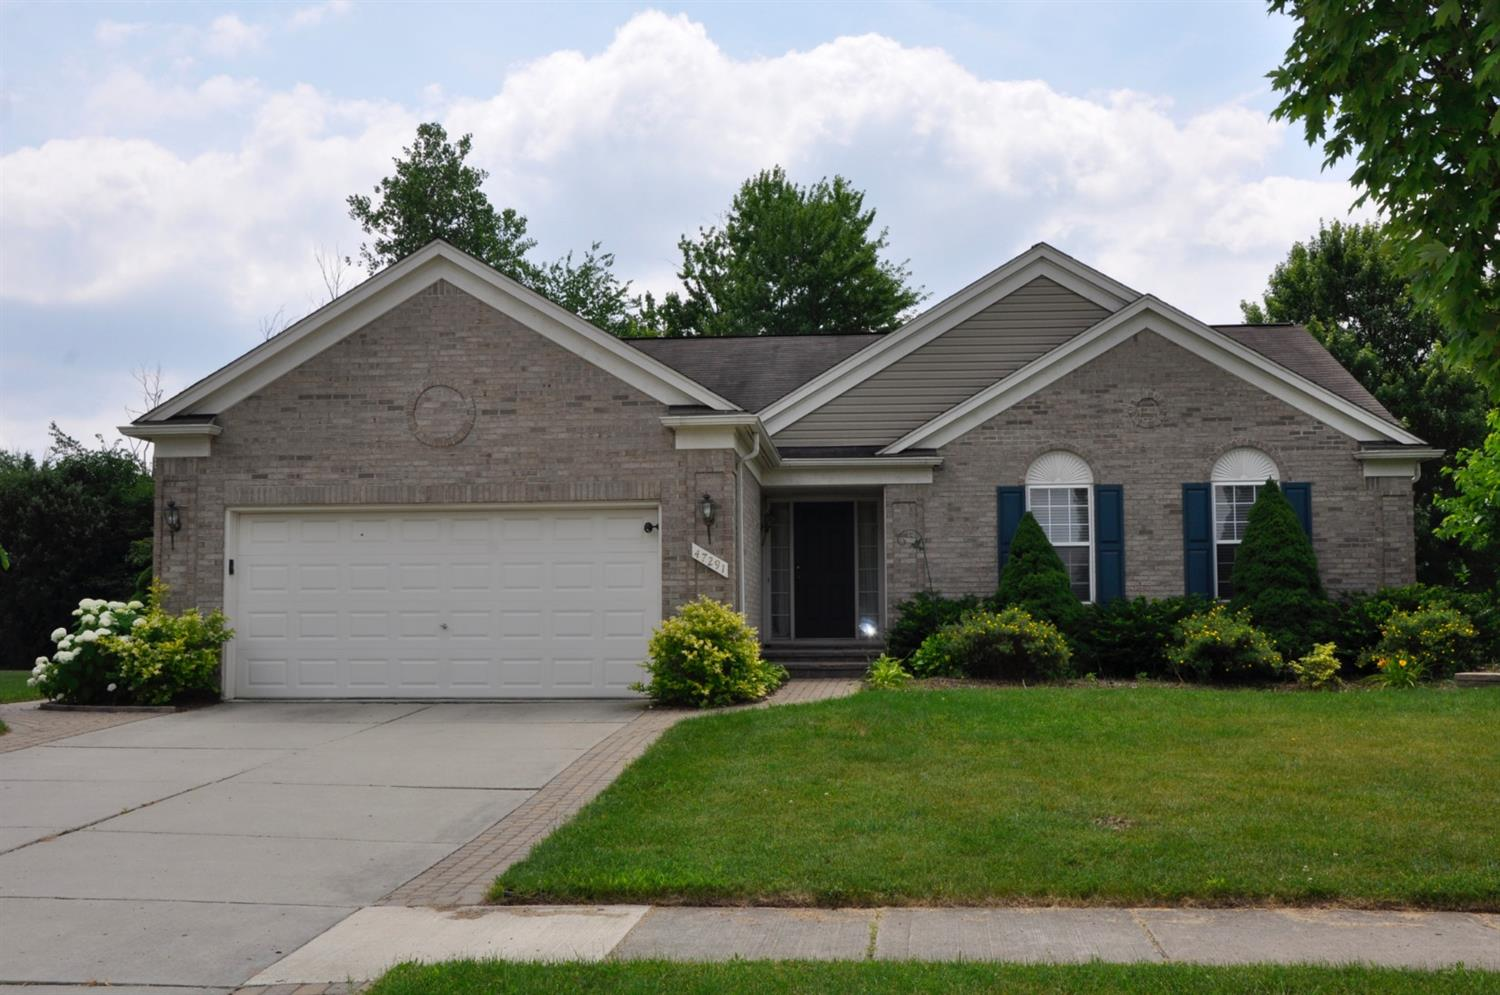 Meadow Villages Canton Development Real Estate - Homes For Sale in